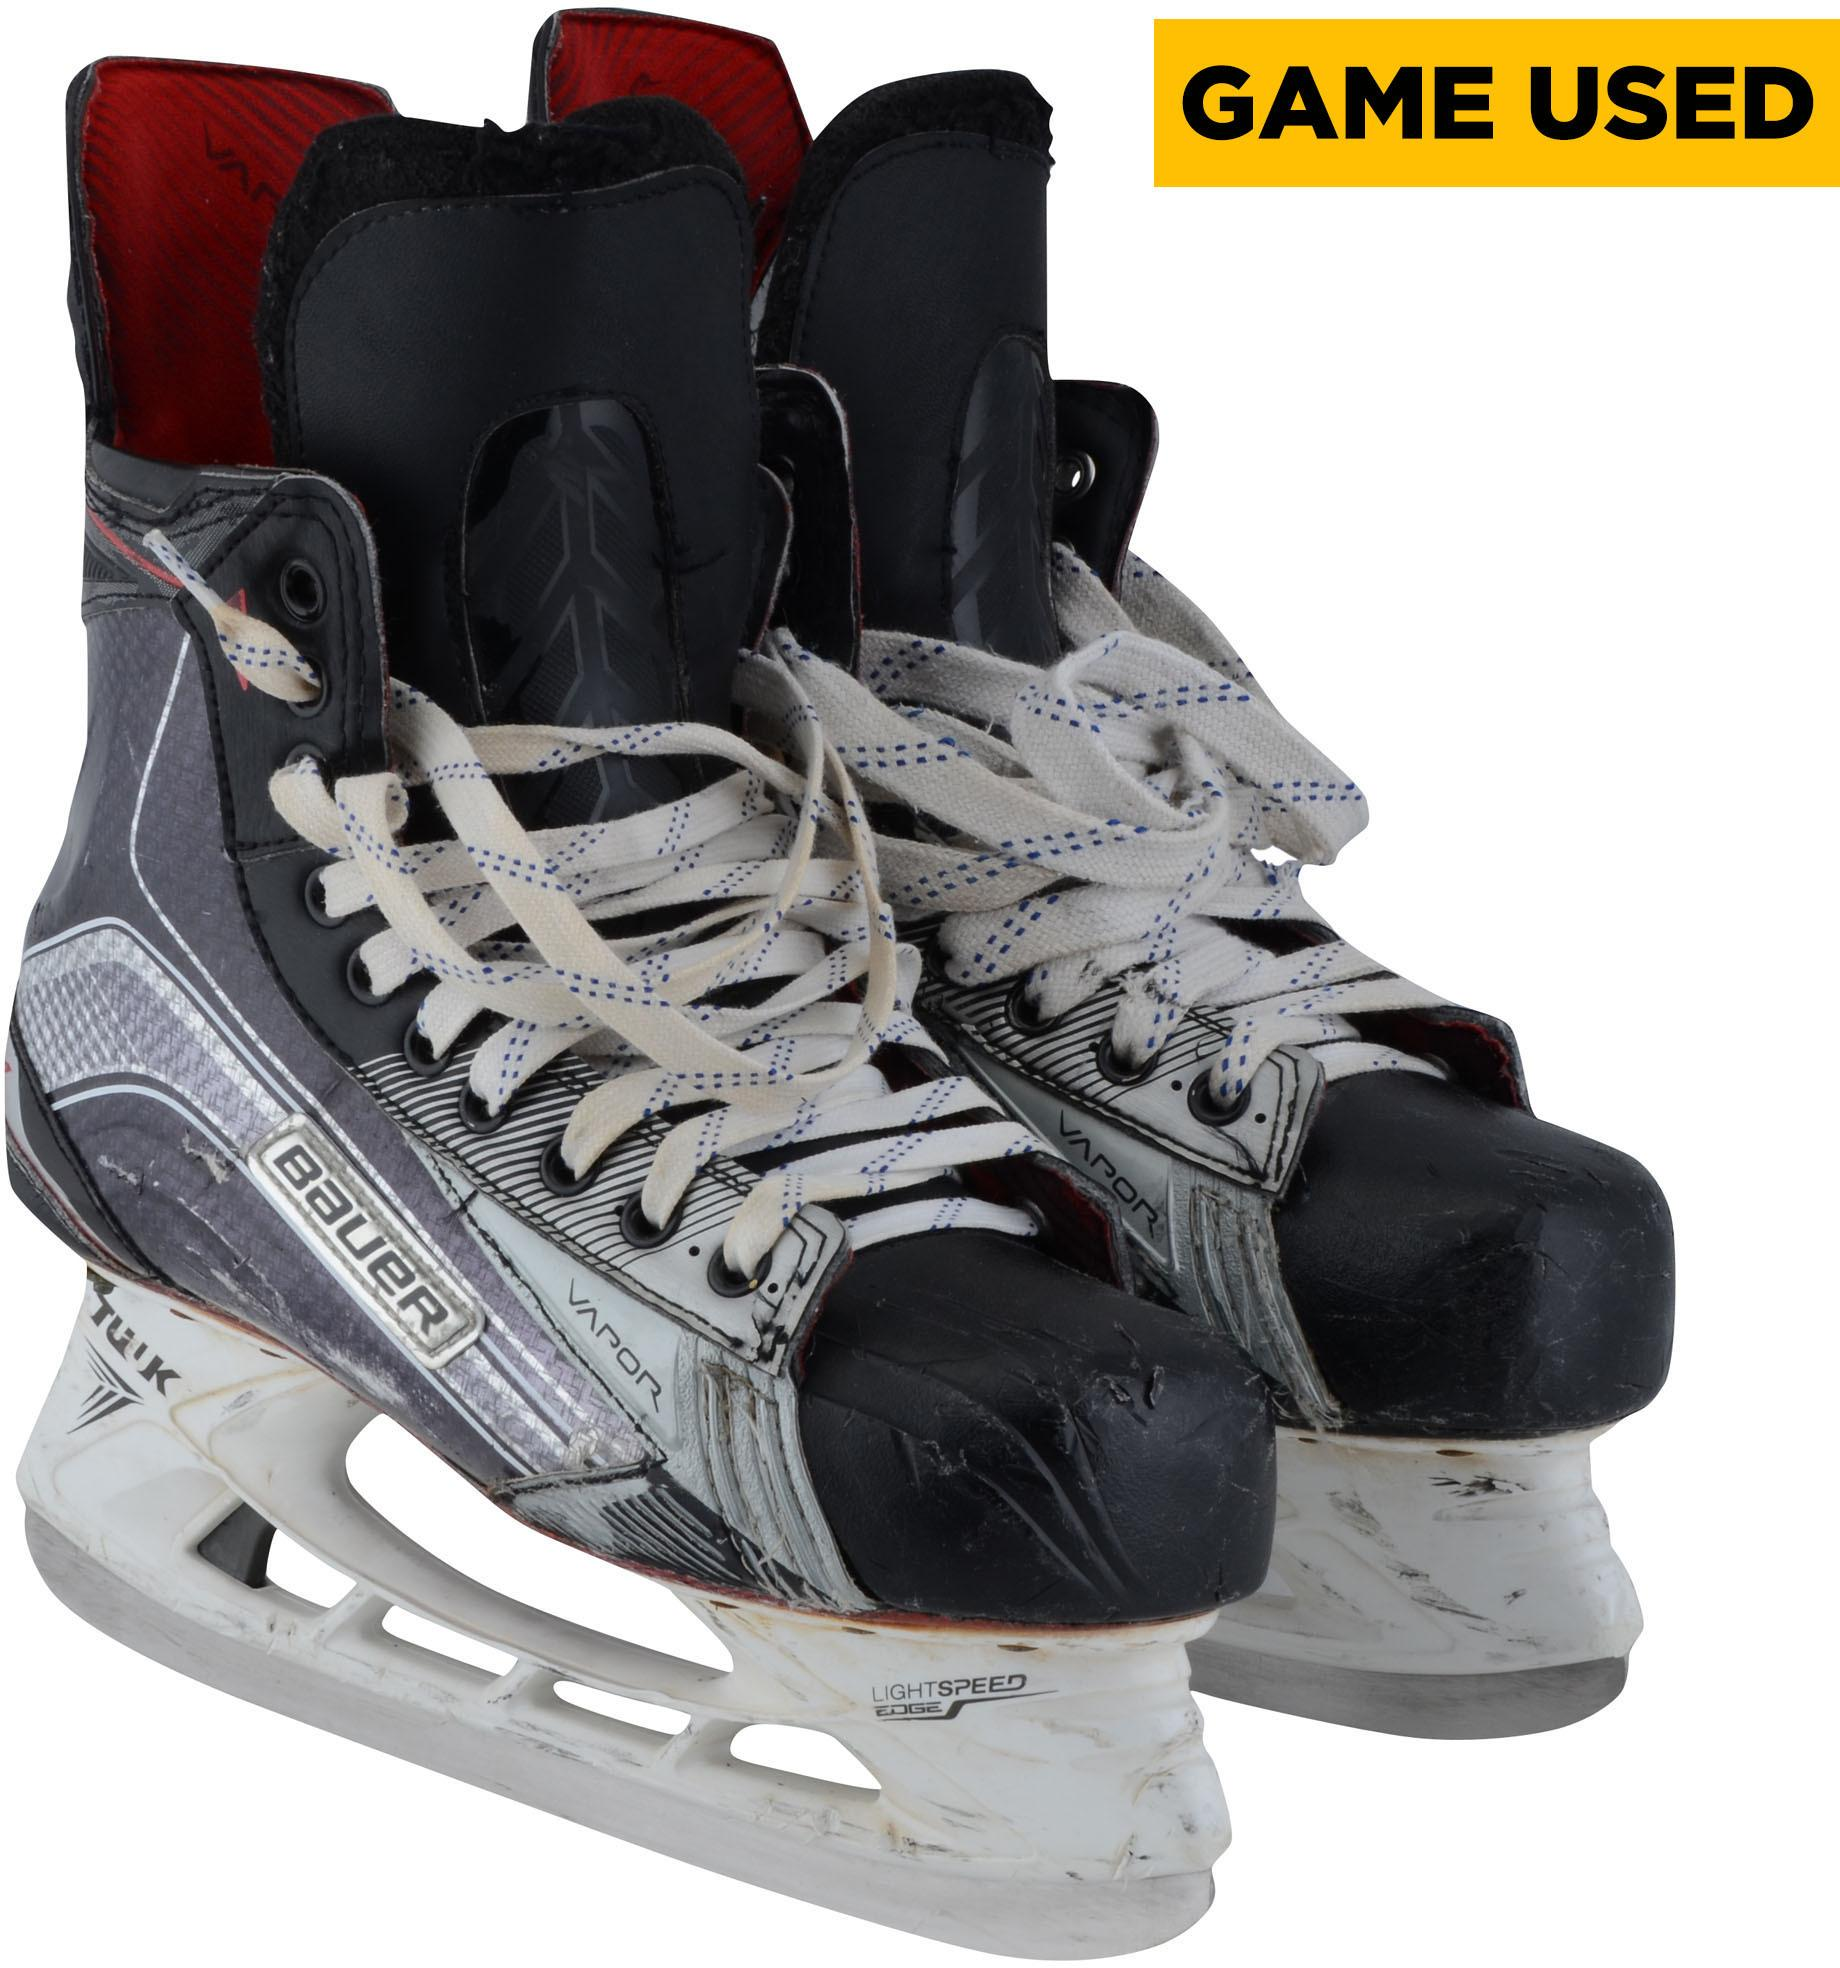 Timo Meier San Jose Sharks Game-Used Black Bauer Skates from the 2017-18 NHL Season Fanatics Authentic Certified by Fanatics Authentic